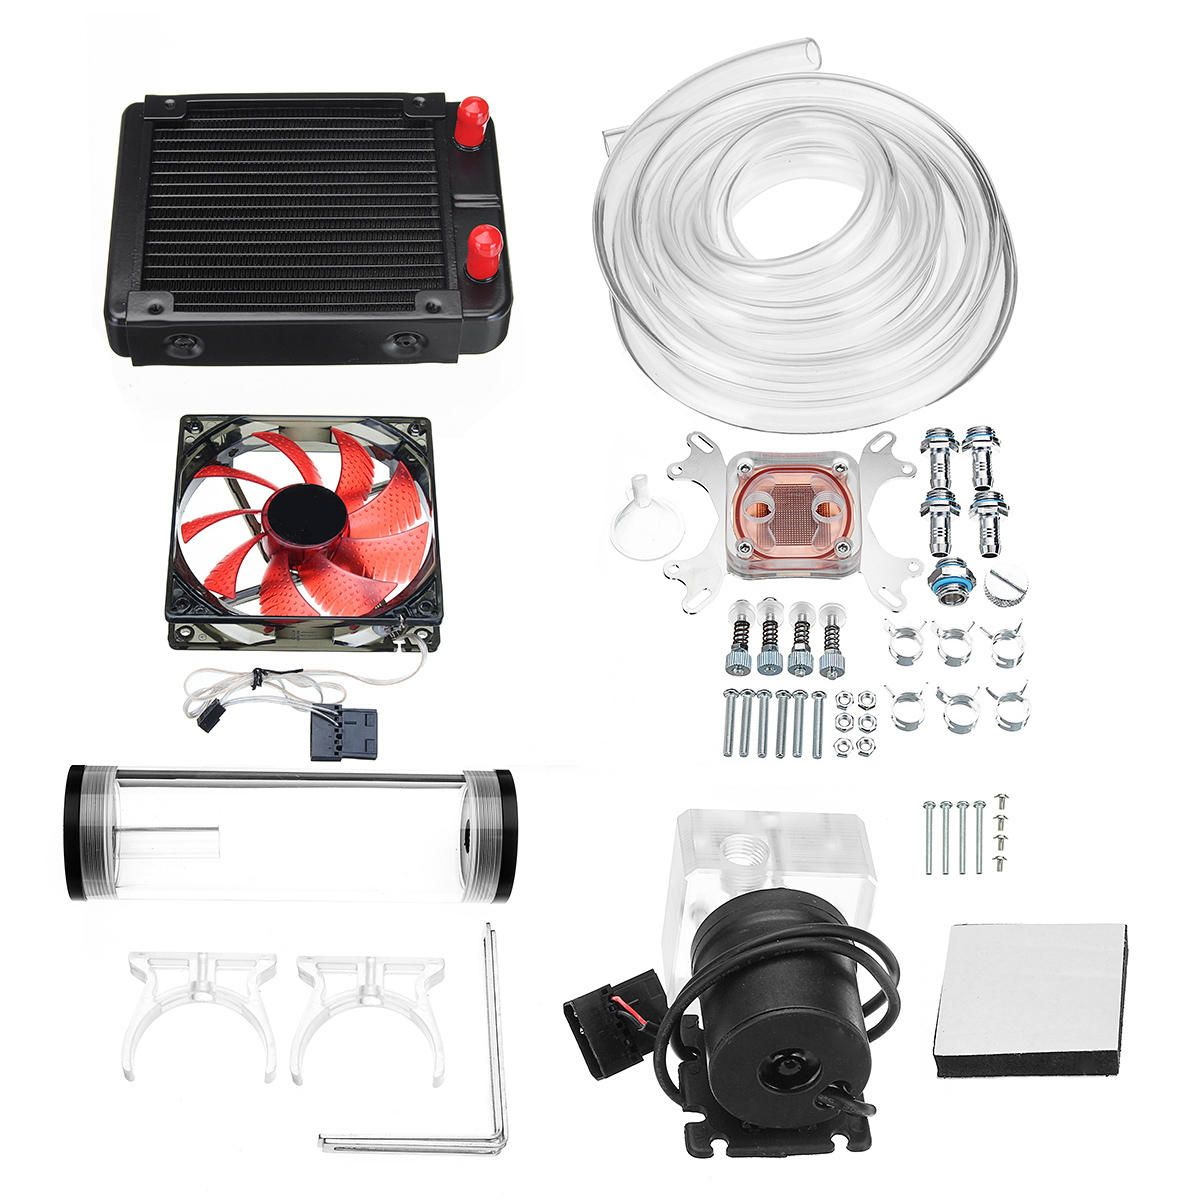 120mm Diy Pc Water Liquid Cooling Fan Kit Heat Sink Set Cpu Block Water Pump Reservoir Hose Diy Pc Pumps Diy Electronics